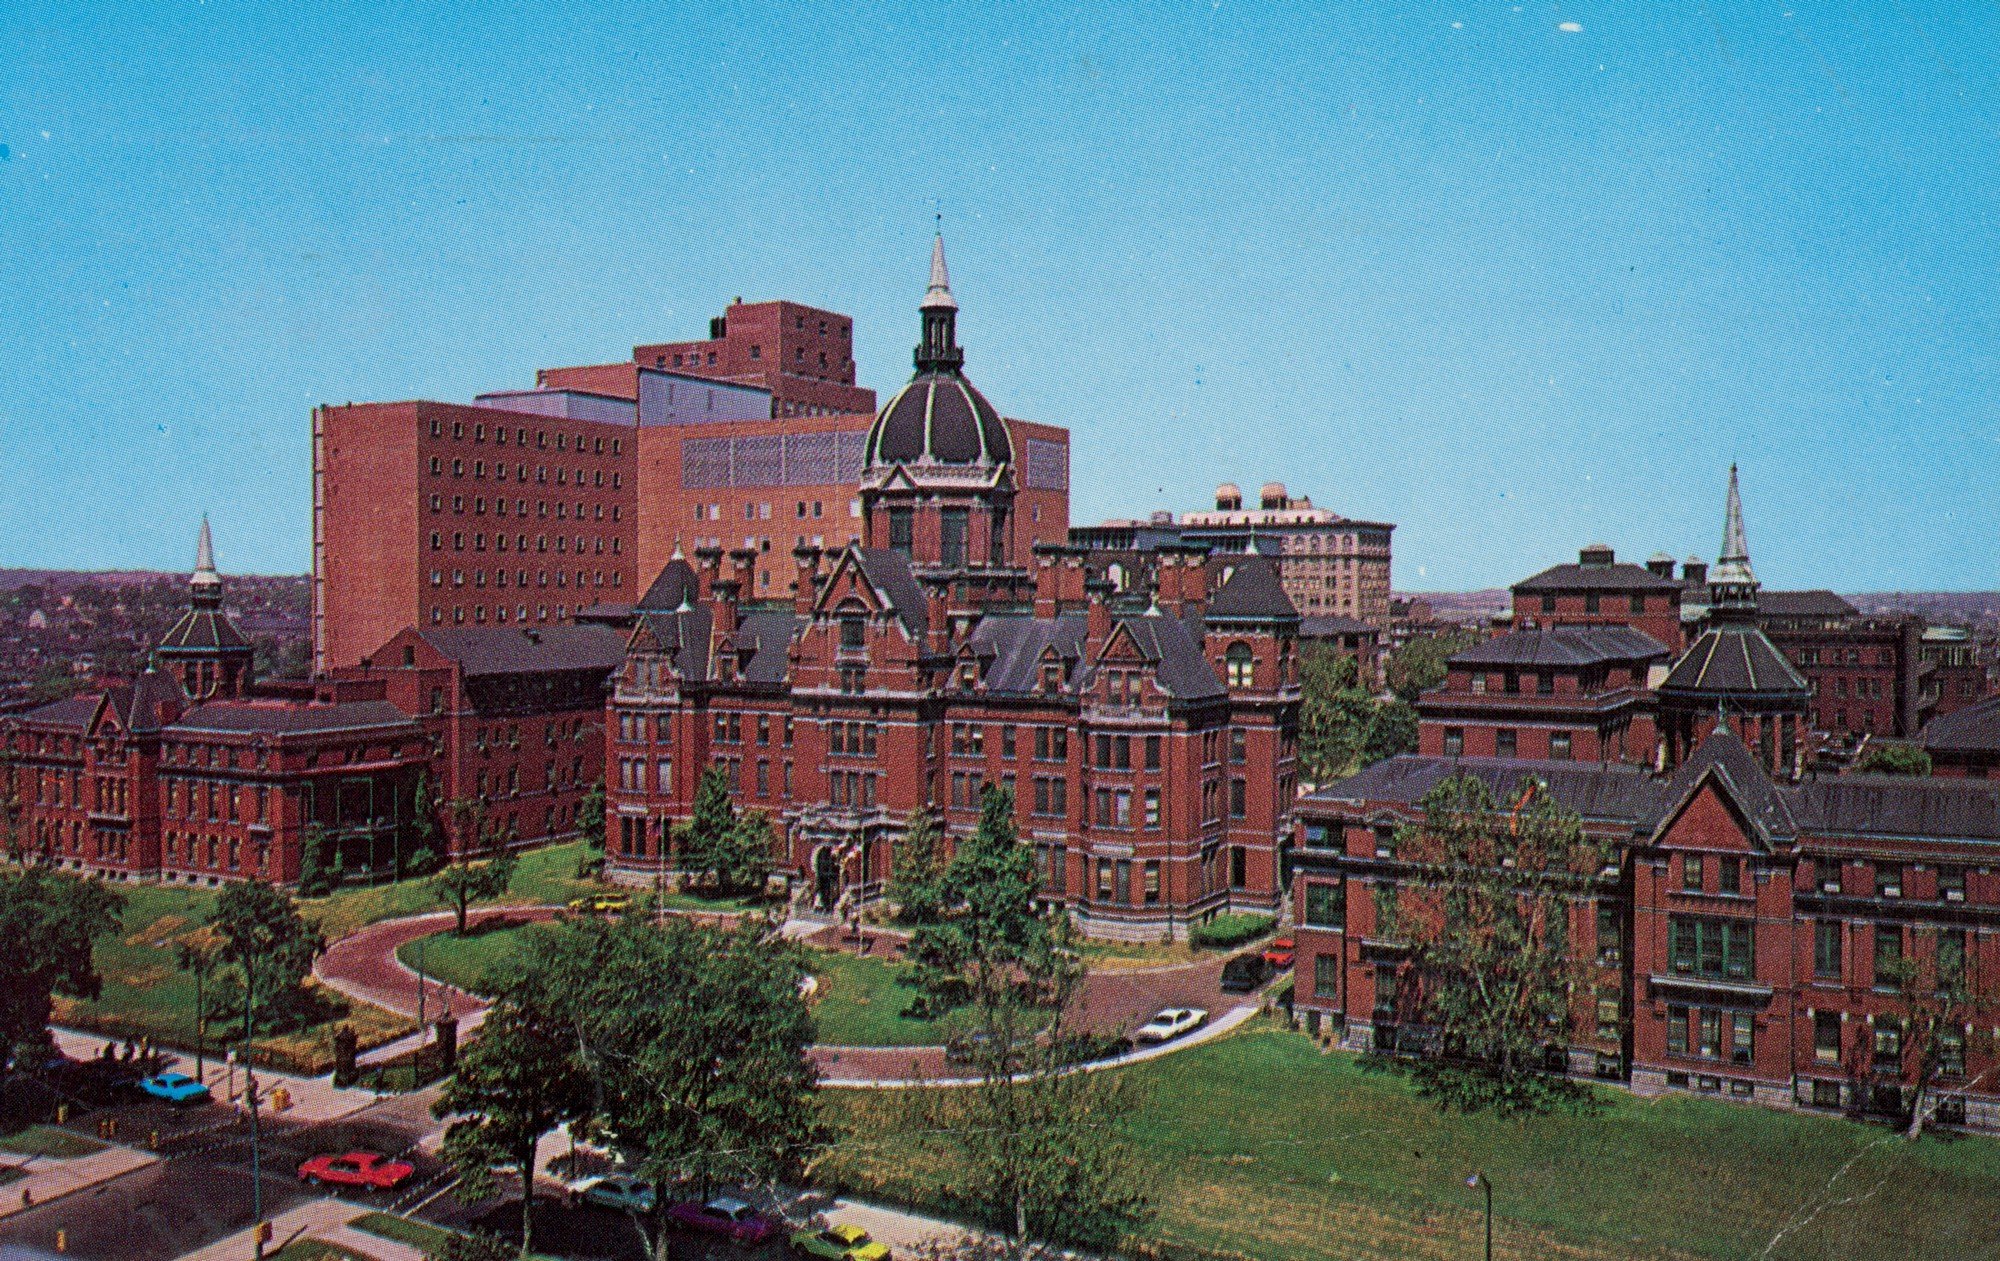 Transsexual operations at johns hopkins